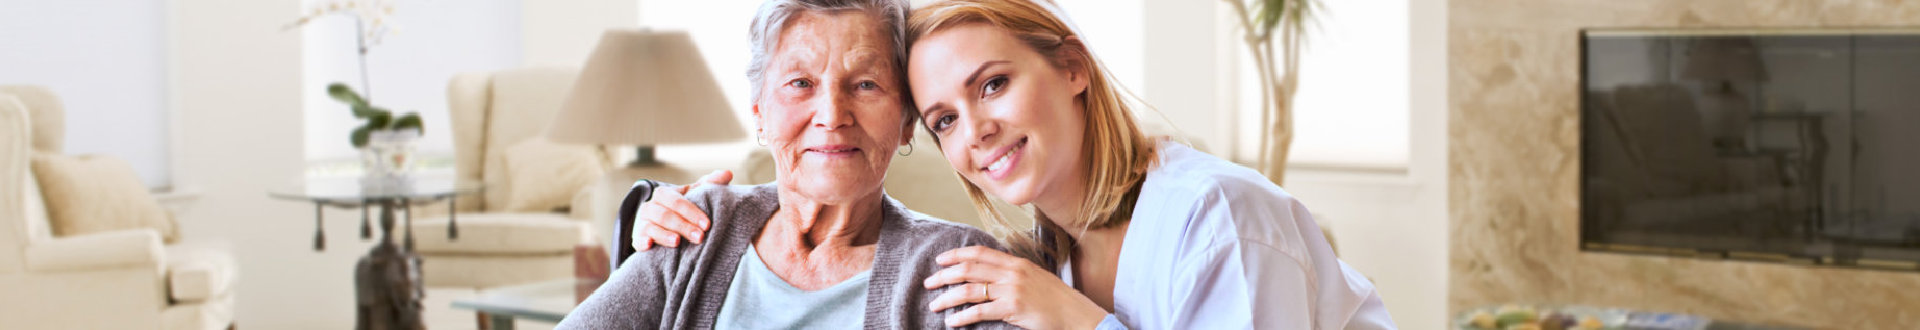 elderly woman together with a young woman